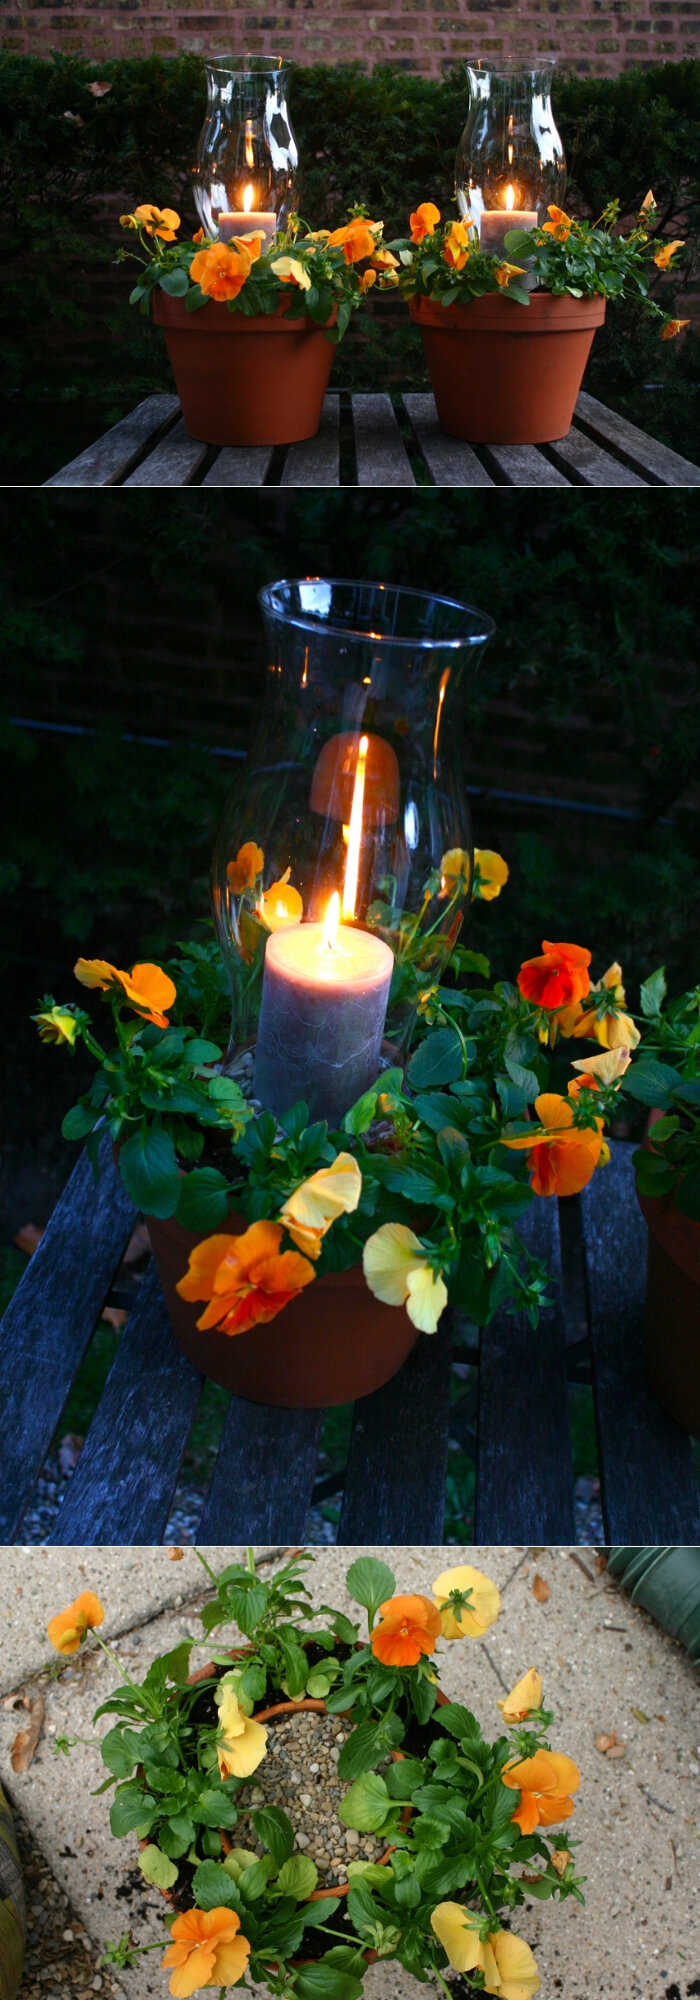 Potted Candle Planters | Trending & Vintage Porch Lighting Ideas & Designs | FarmFoodFamily.com